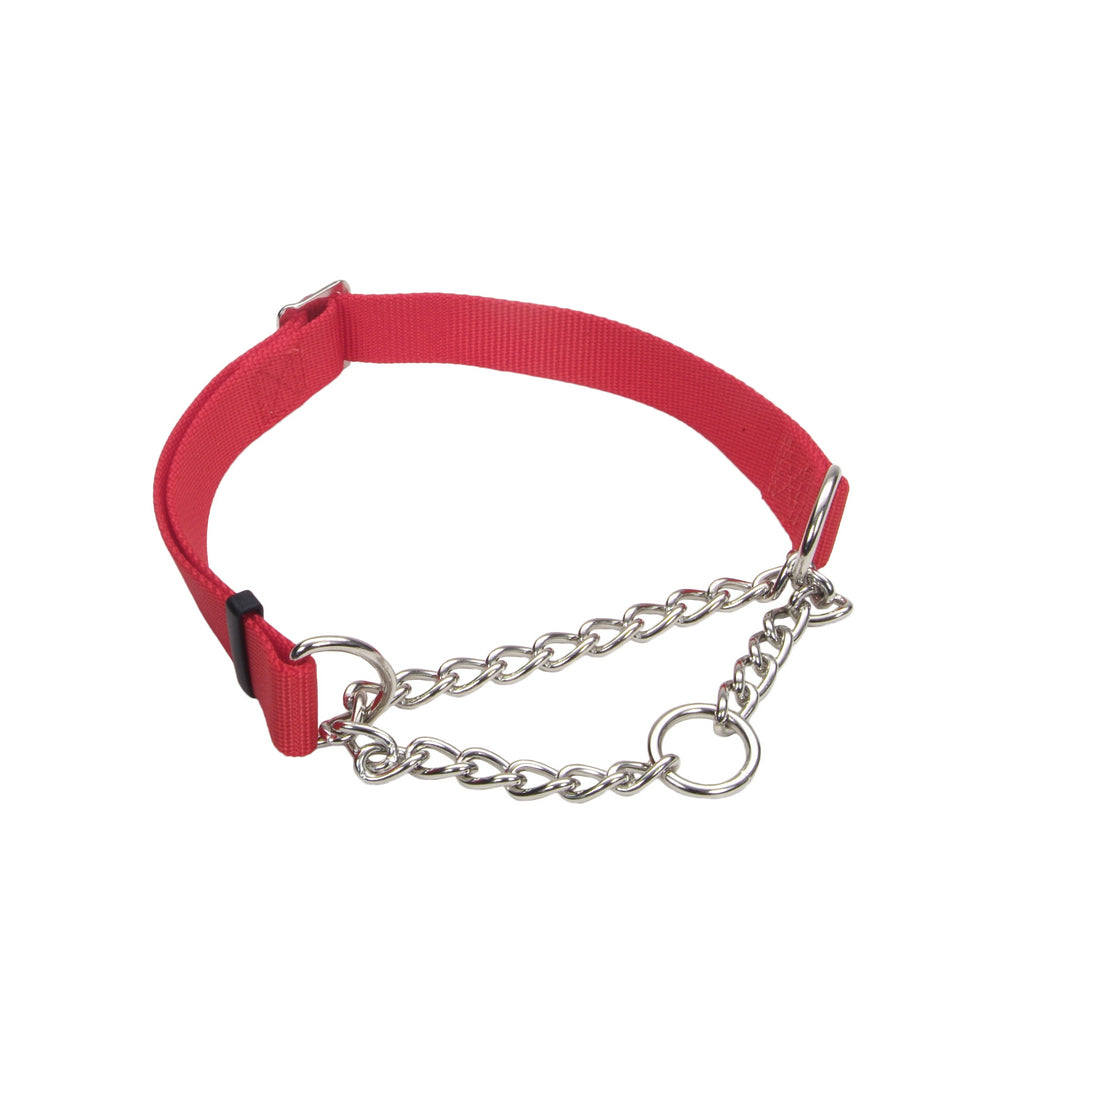 "Coastal Adjustable Check Choke Training Collar 3/8"" - 10"" Red"